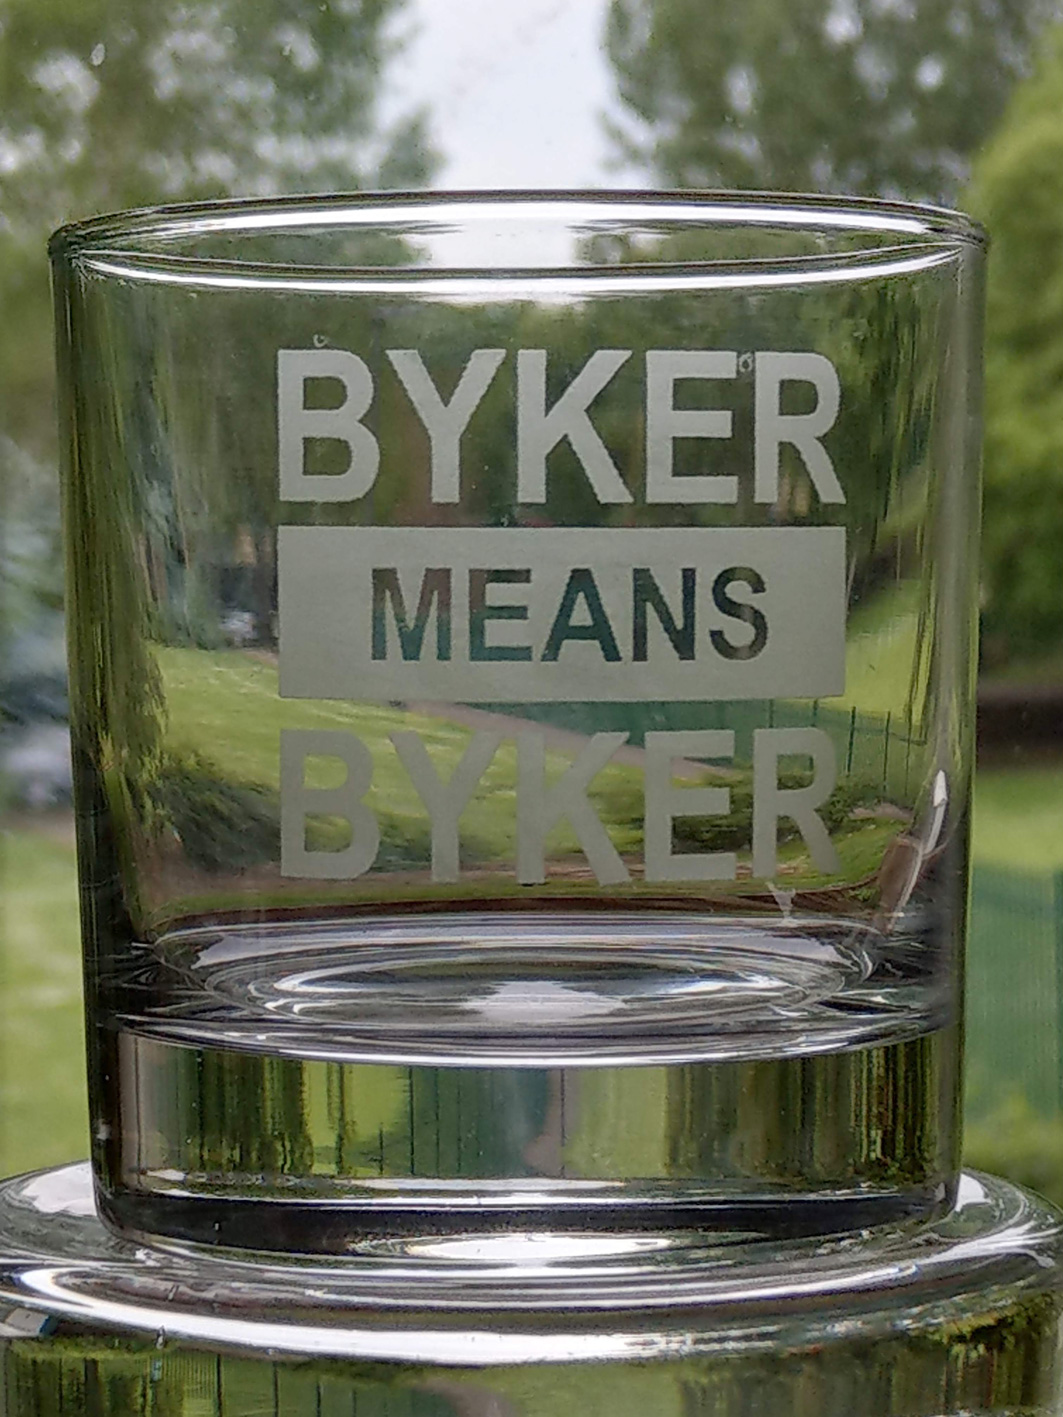 Byker-Means-Byker-Glass-3.jpg